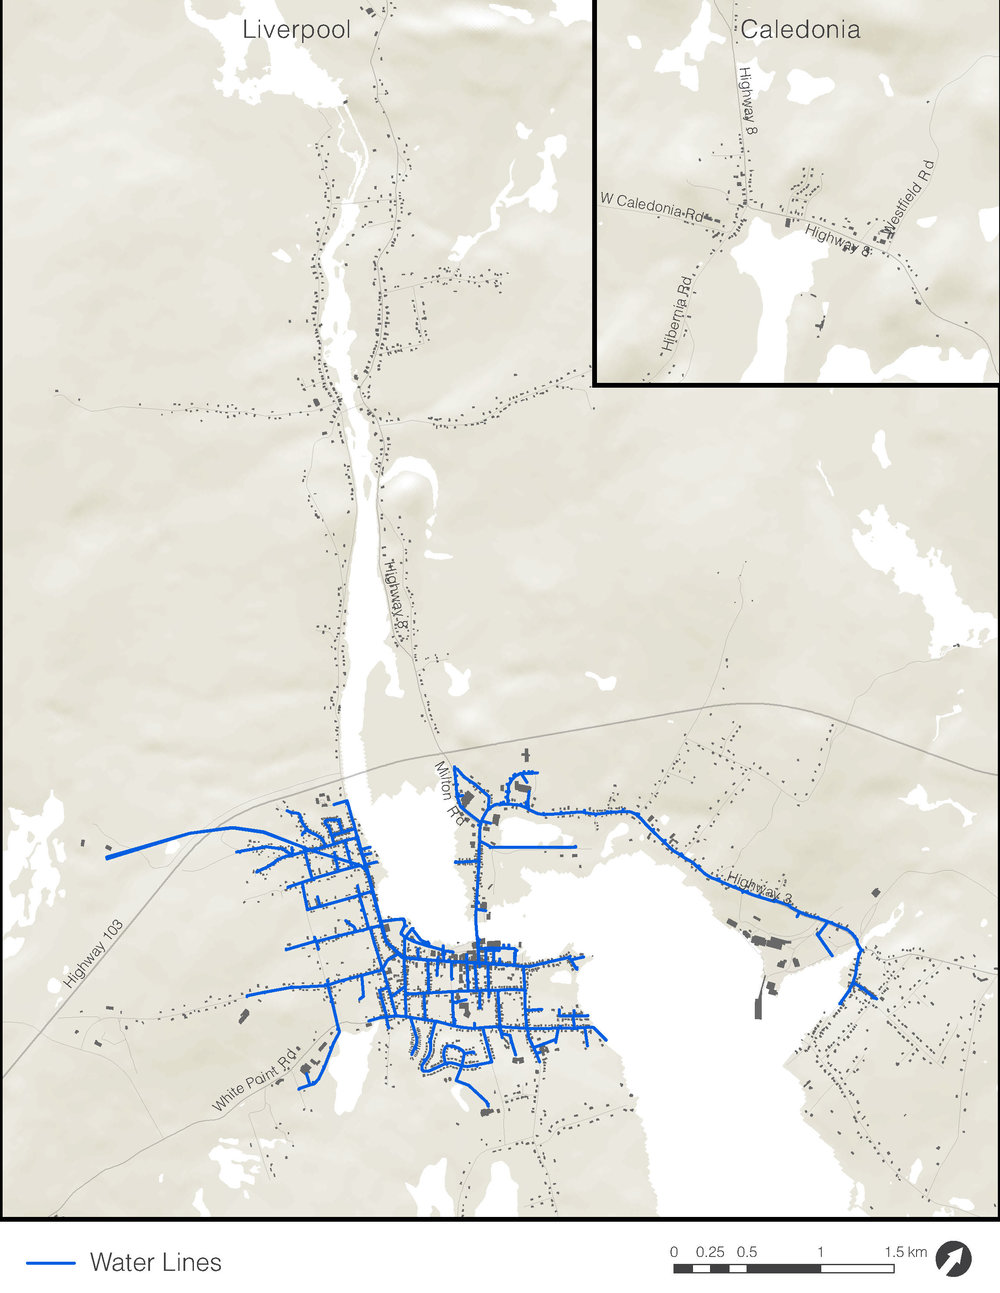 This map shows the locations of existing municipal water lines